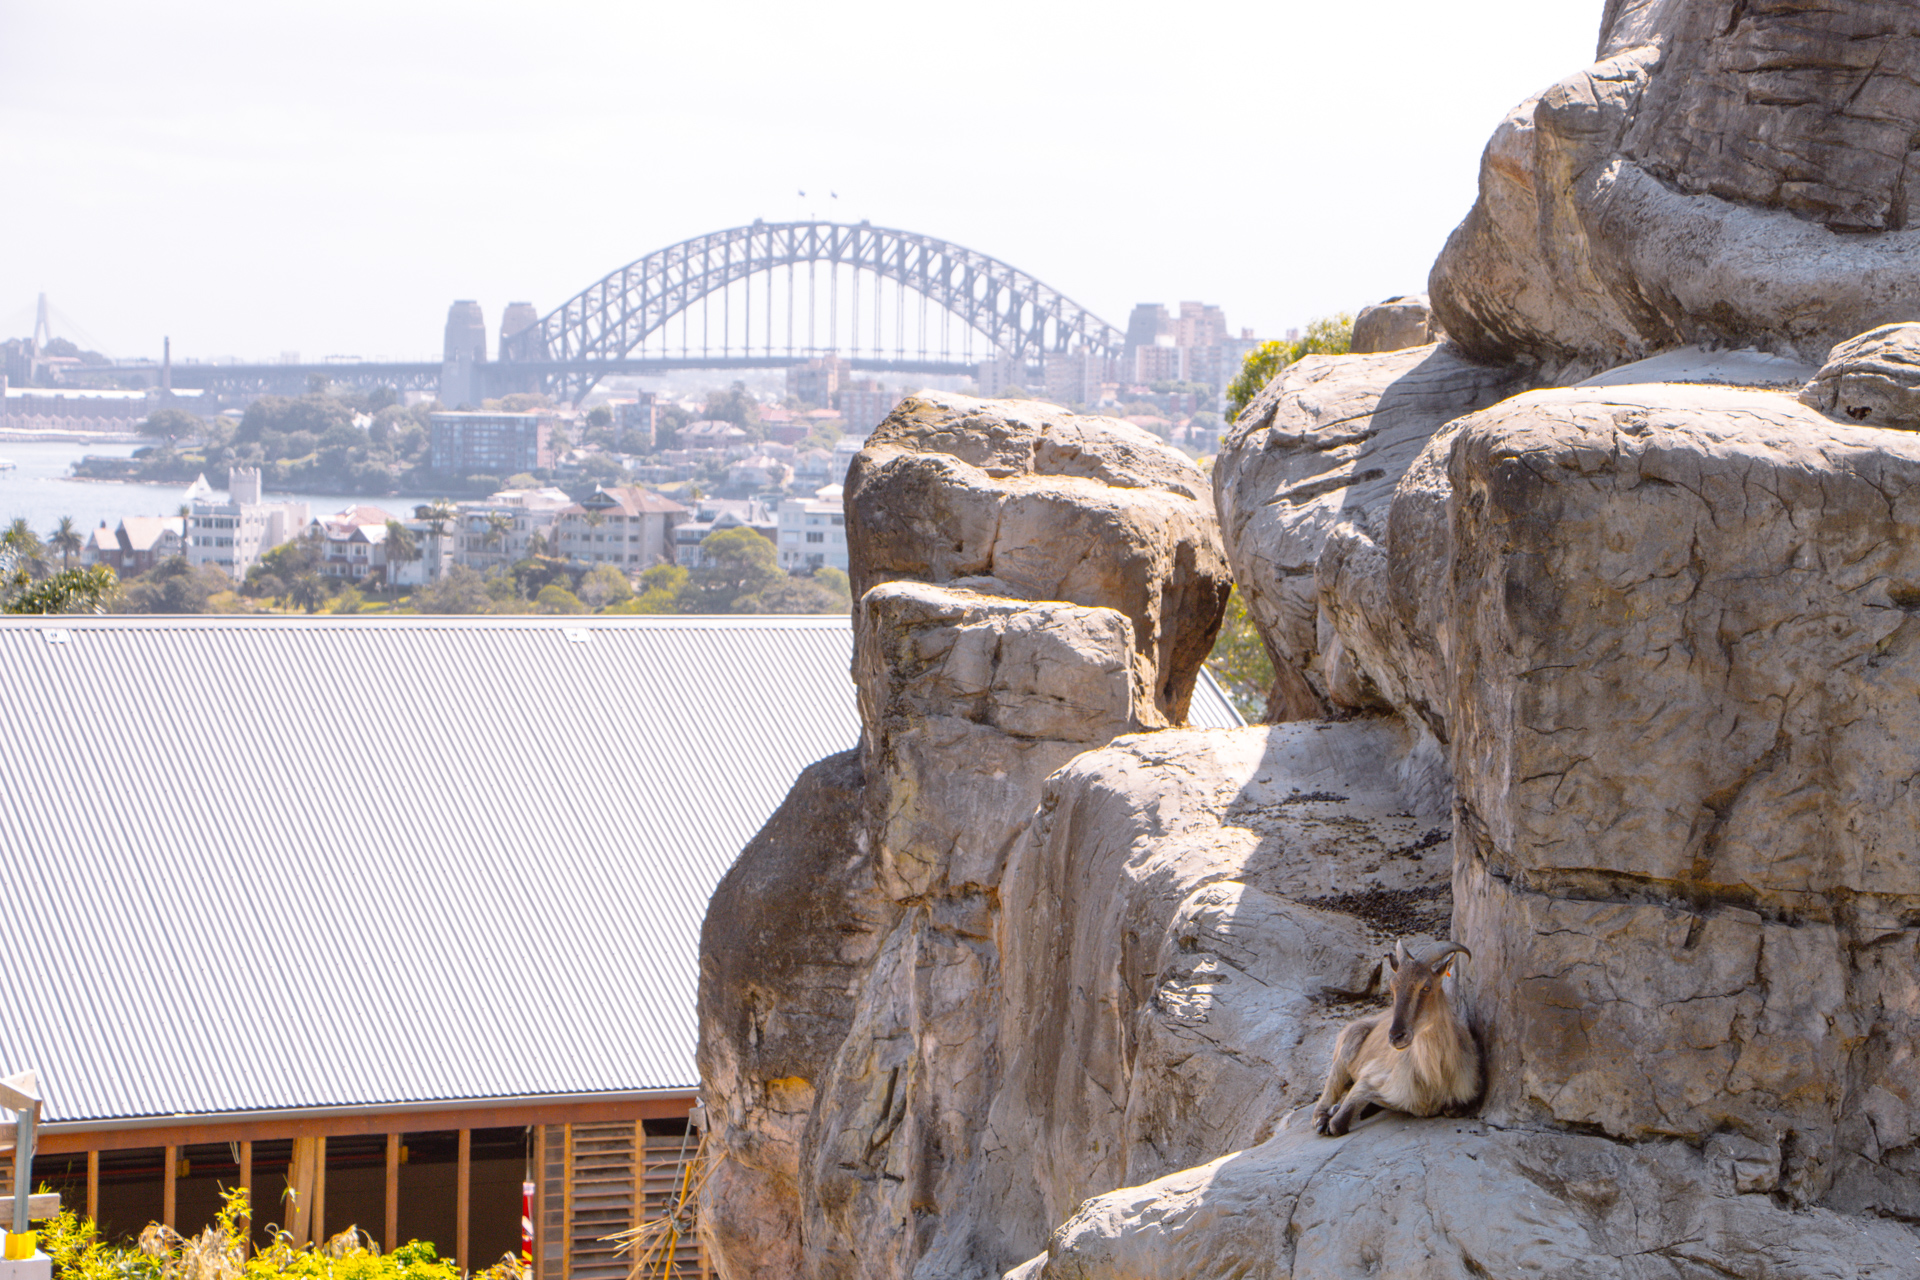 Sydney Zoo overlooking harbour and bay